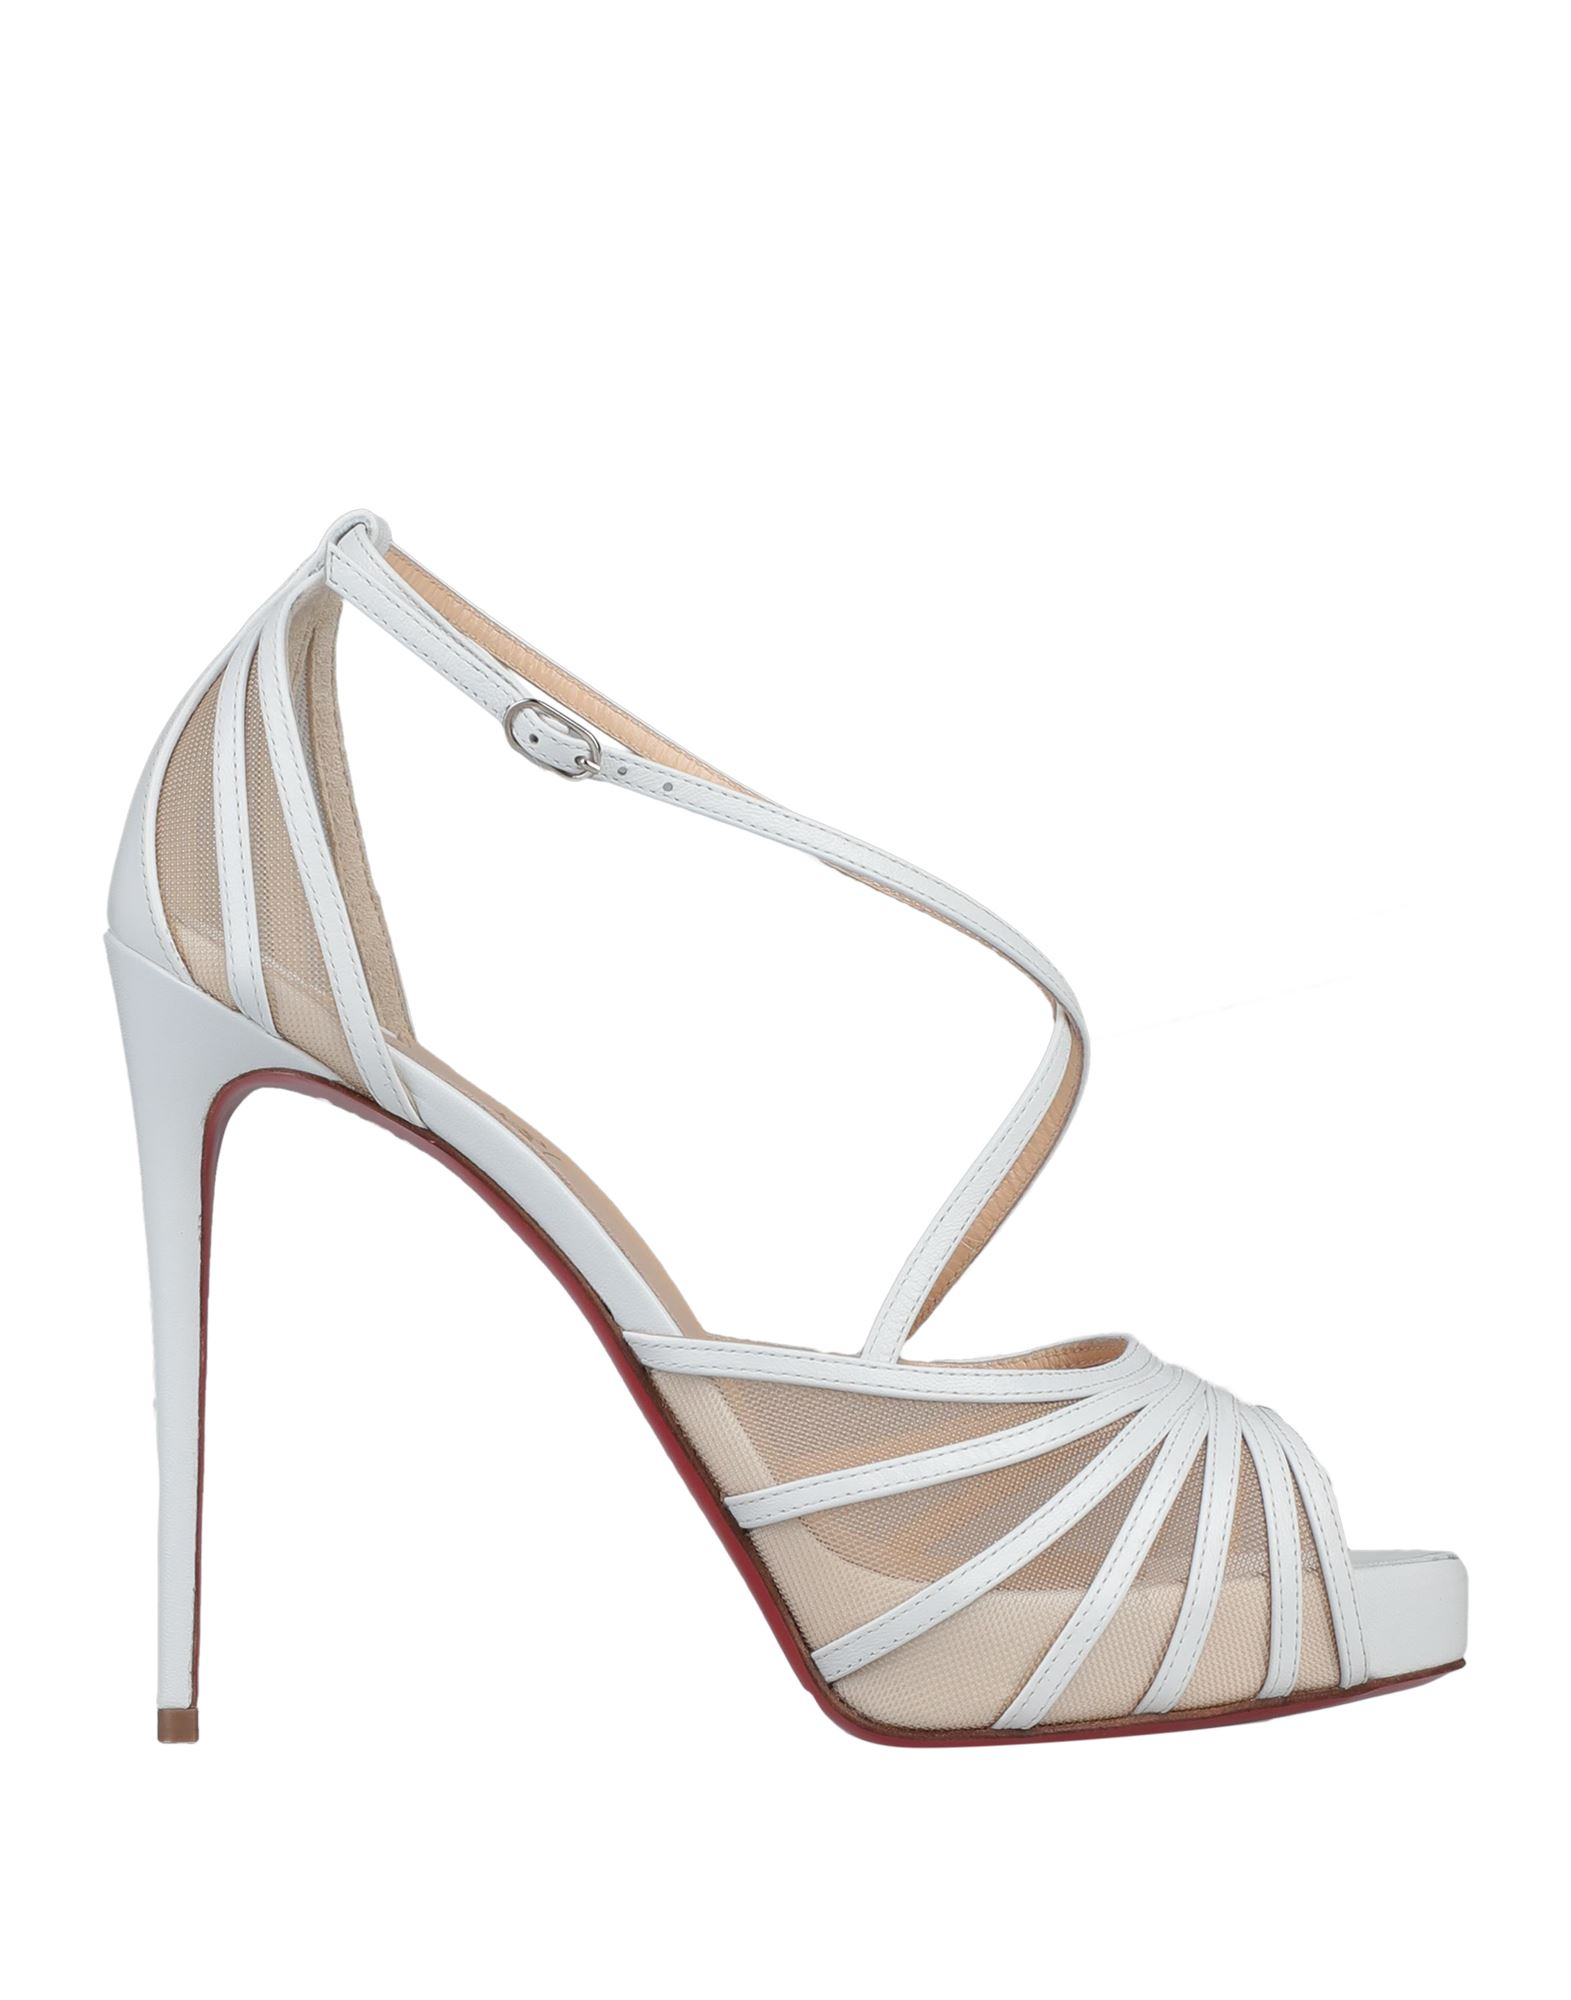 CHRISTIAN LOUBOUTIN Sandals. tulle, leather, no appliqués, solid color, buckle fastening, round toeline, spike heel, covered heel, leather lining, leather sole, contains non-textile parts of animal origin, small sized. Kidskin, Textile fibers